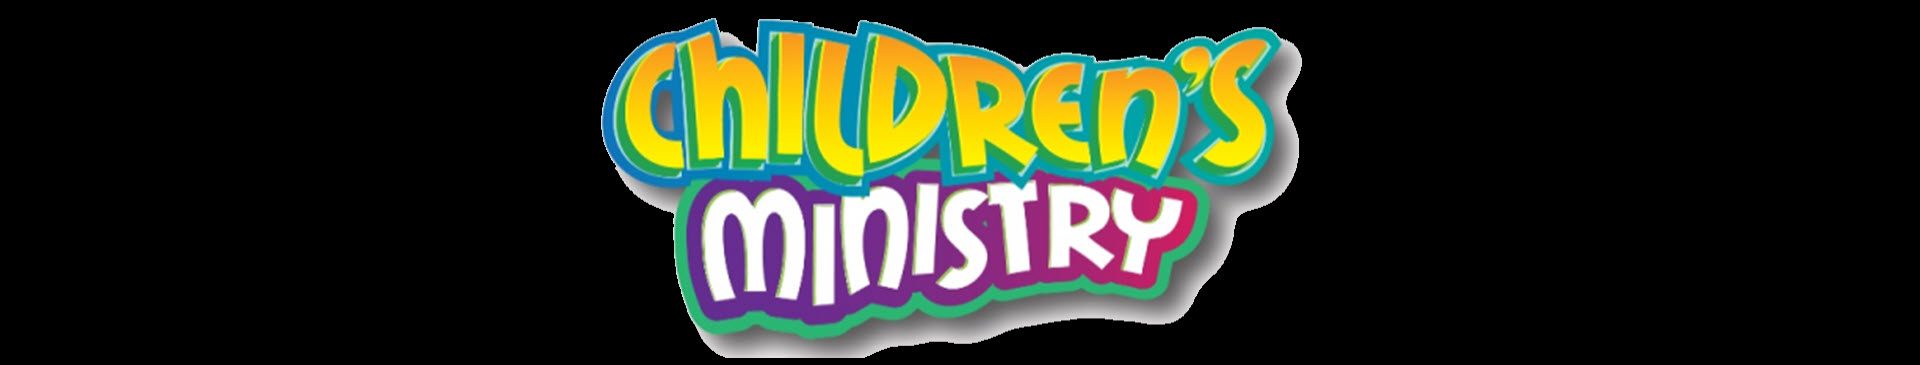 Childrens Ministry Faith Temple